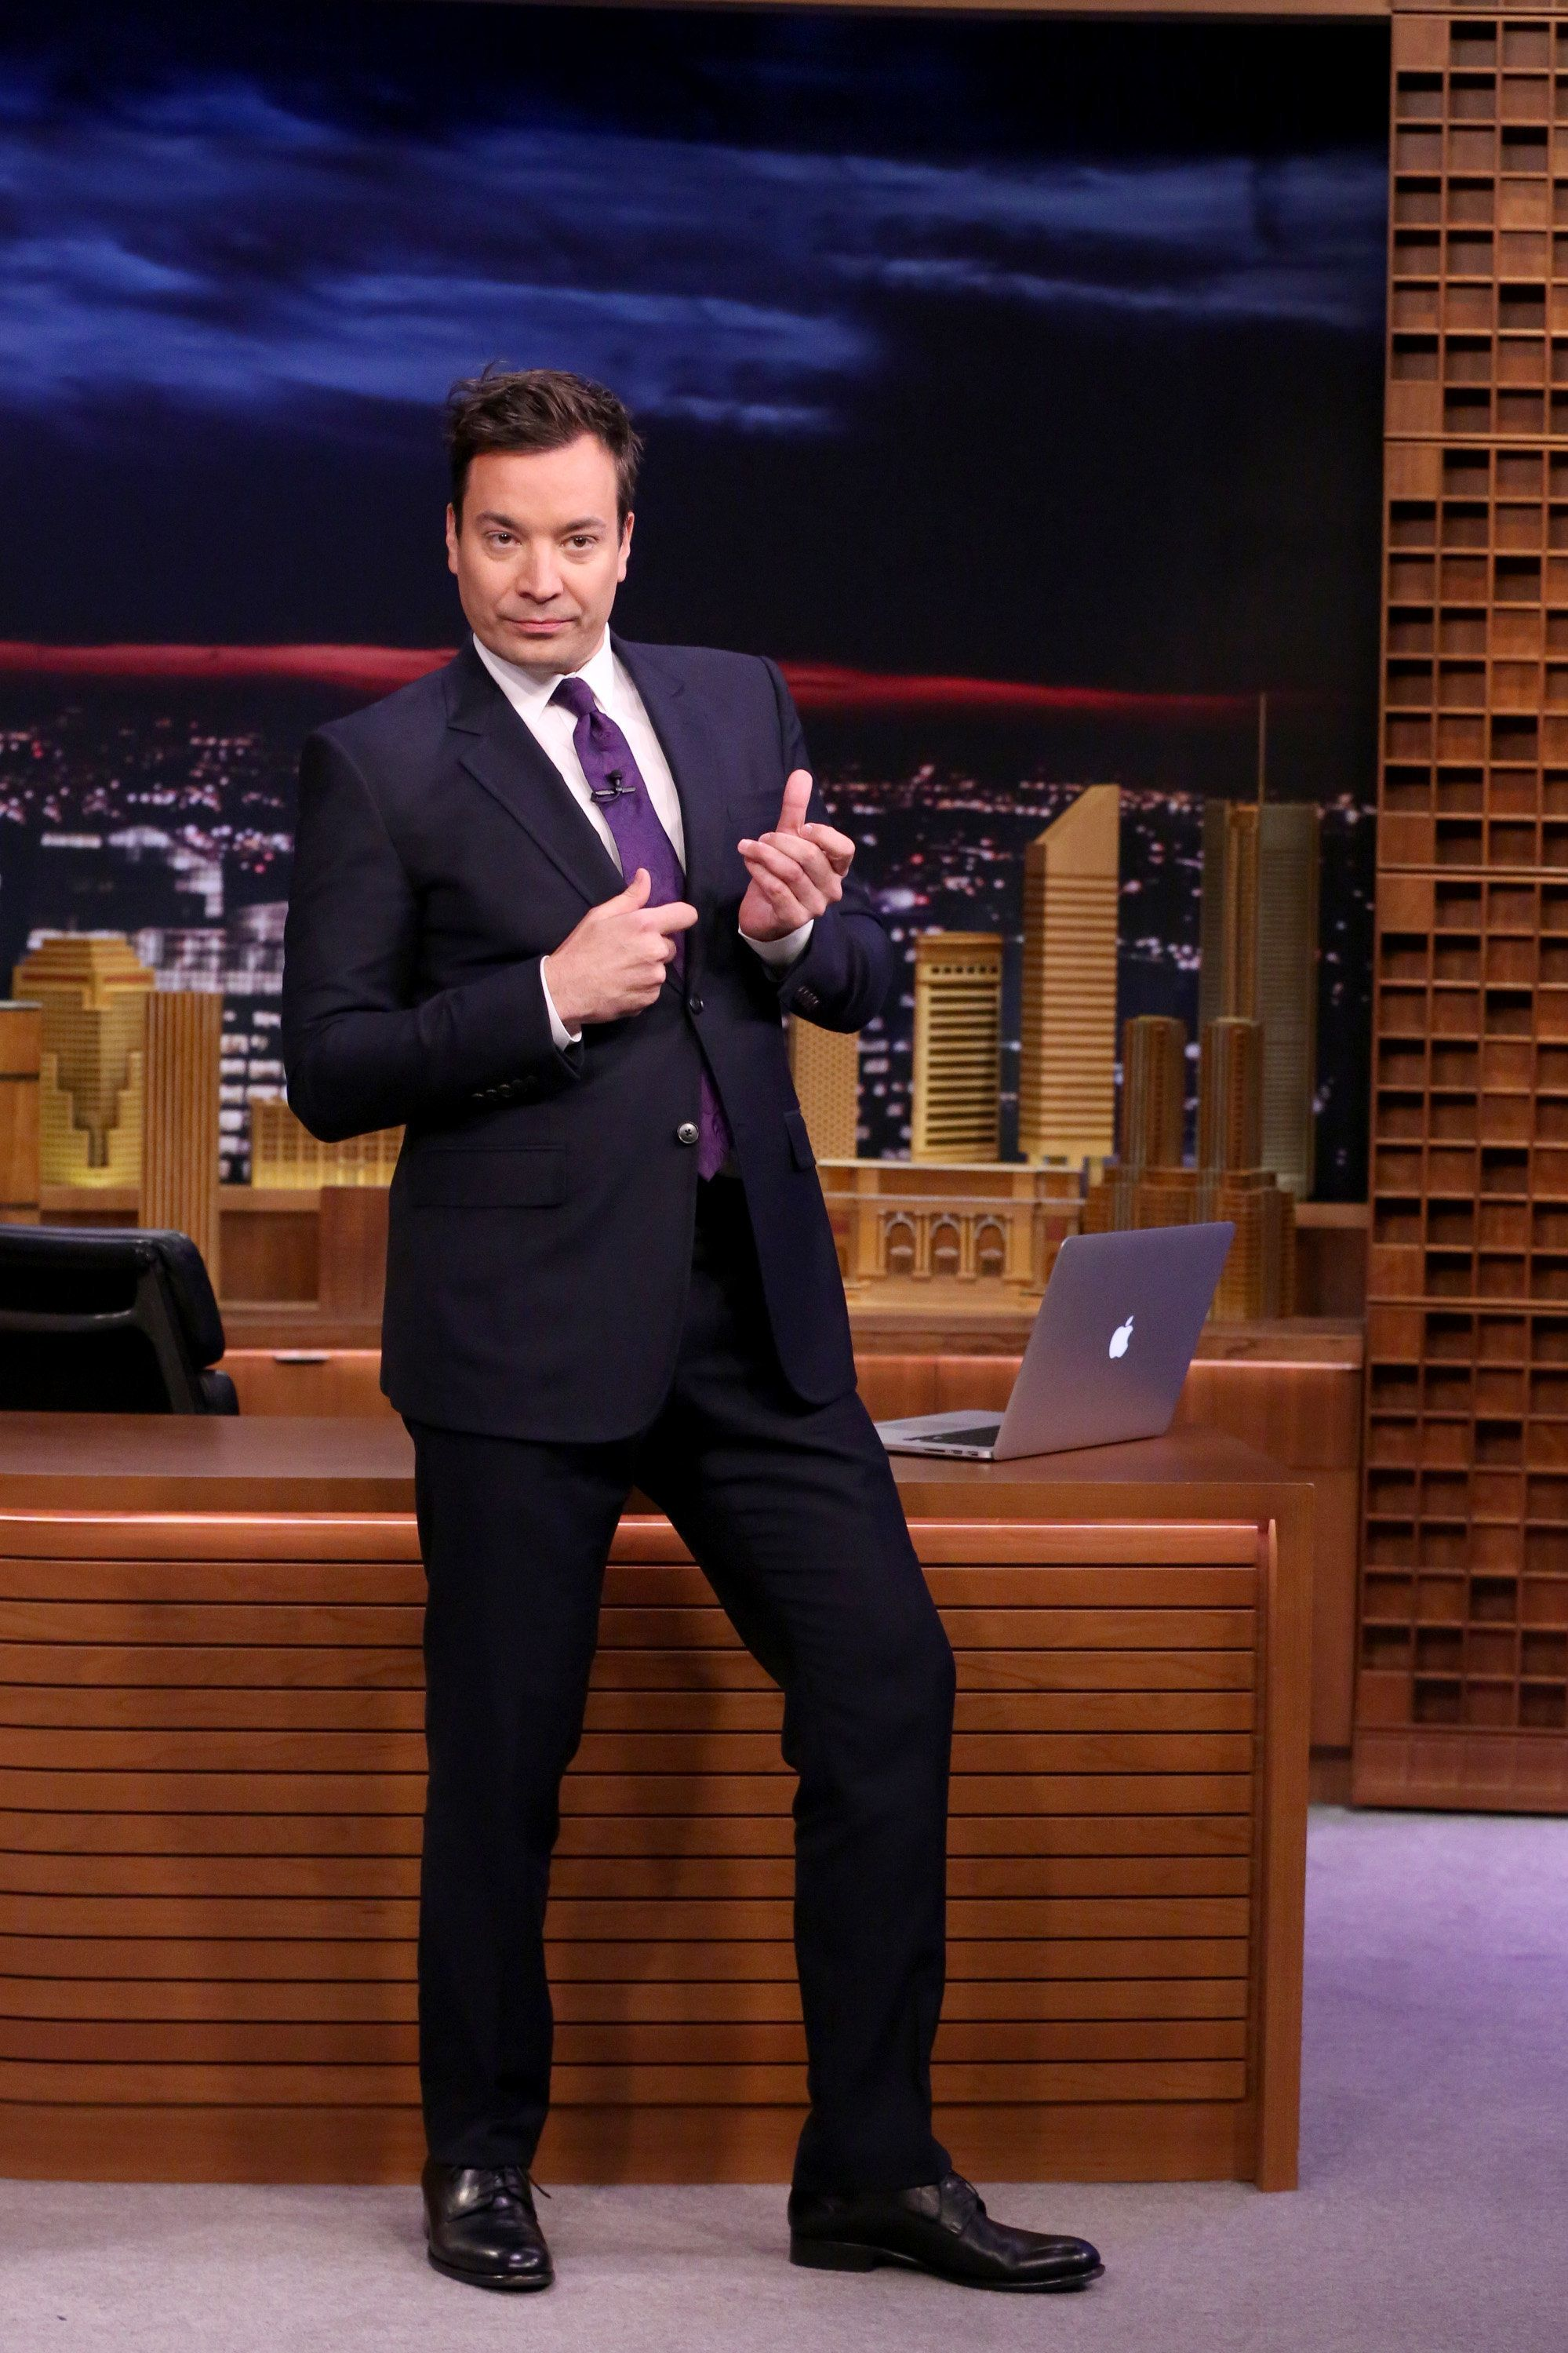 THE TONIGHT SHOW STARRING JIMMY FALLON -- Episode 0457 -- Pictured: Host Jimmy Fallon during the monologue on April 25, 2016 -- (Photo by: Andrew Lipovsky/NBC/NBCU Photo Bank via Getty Images)